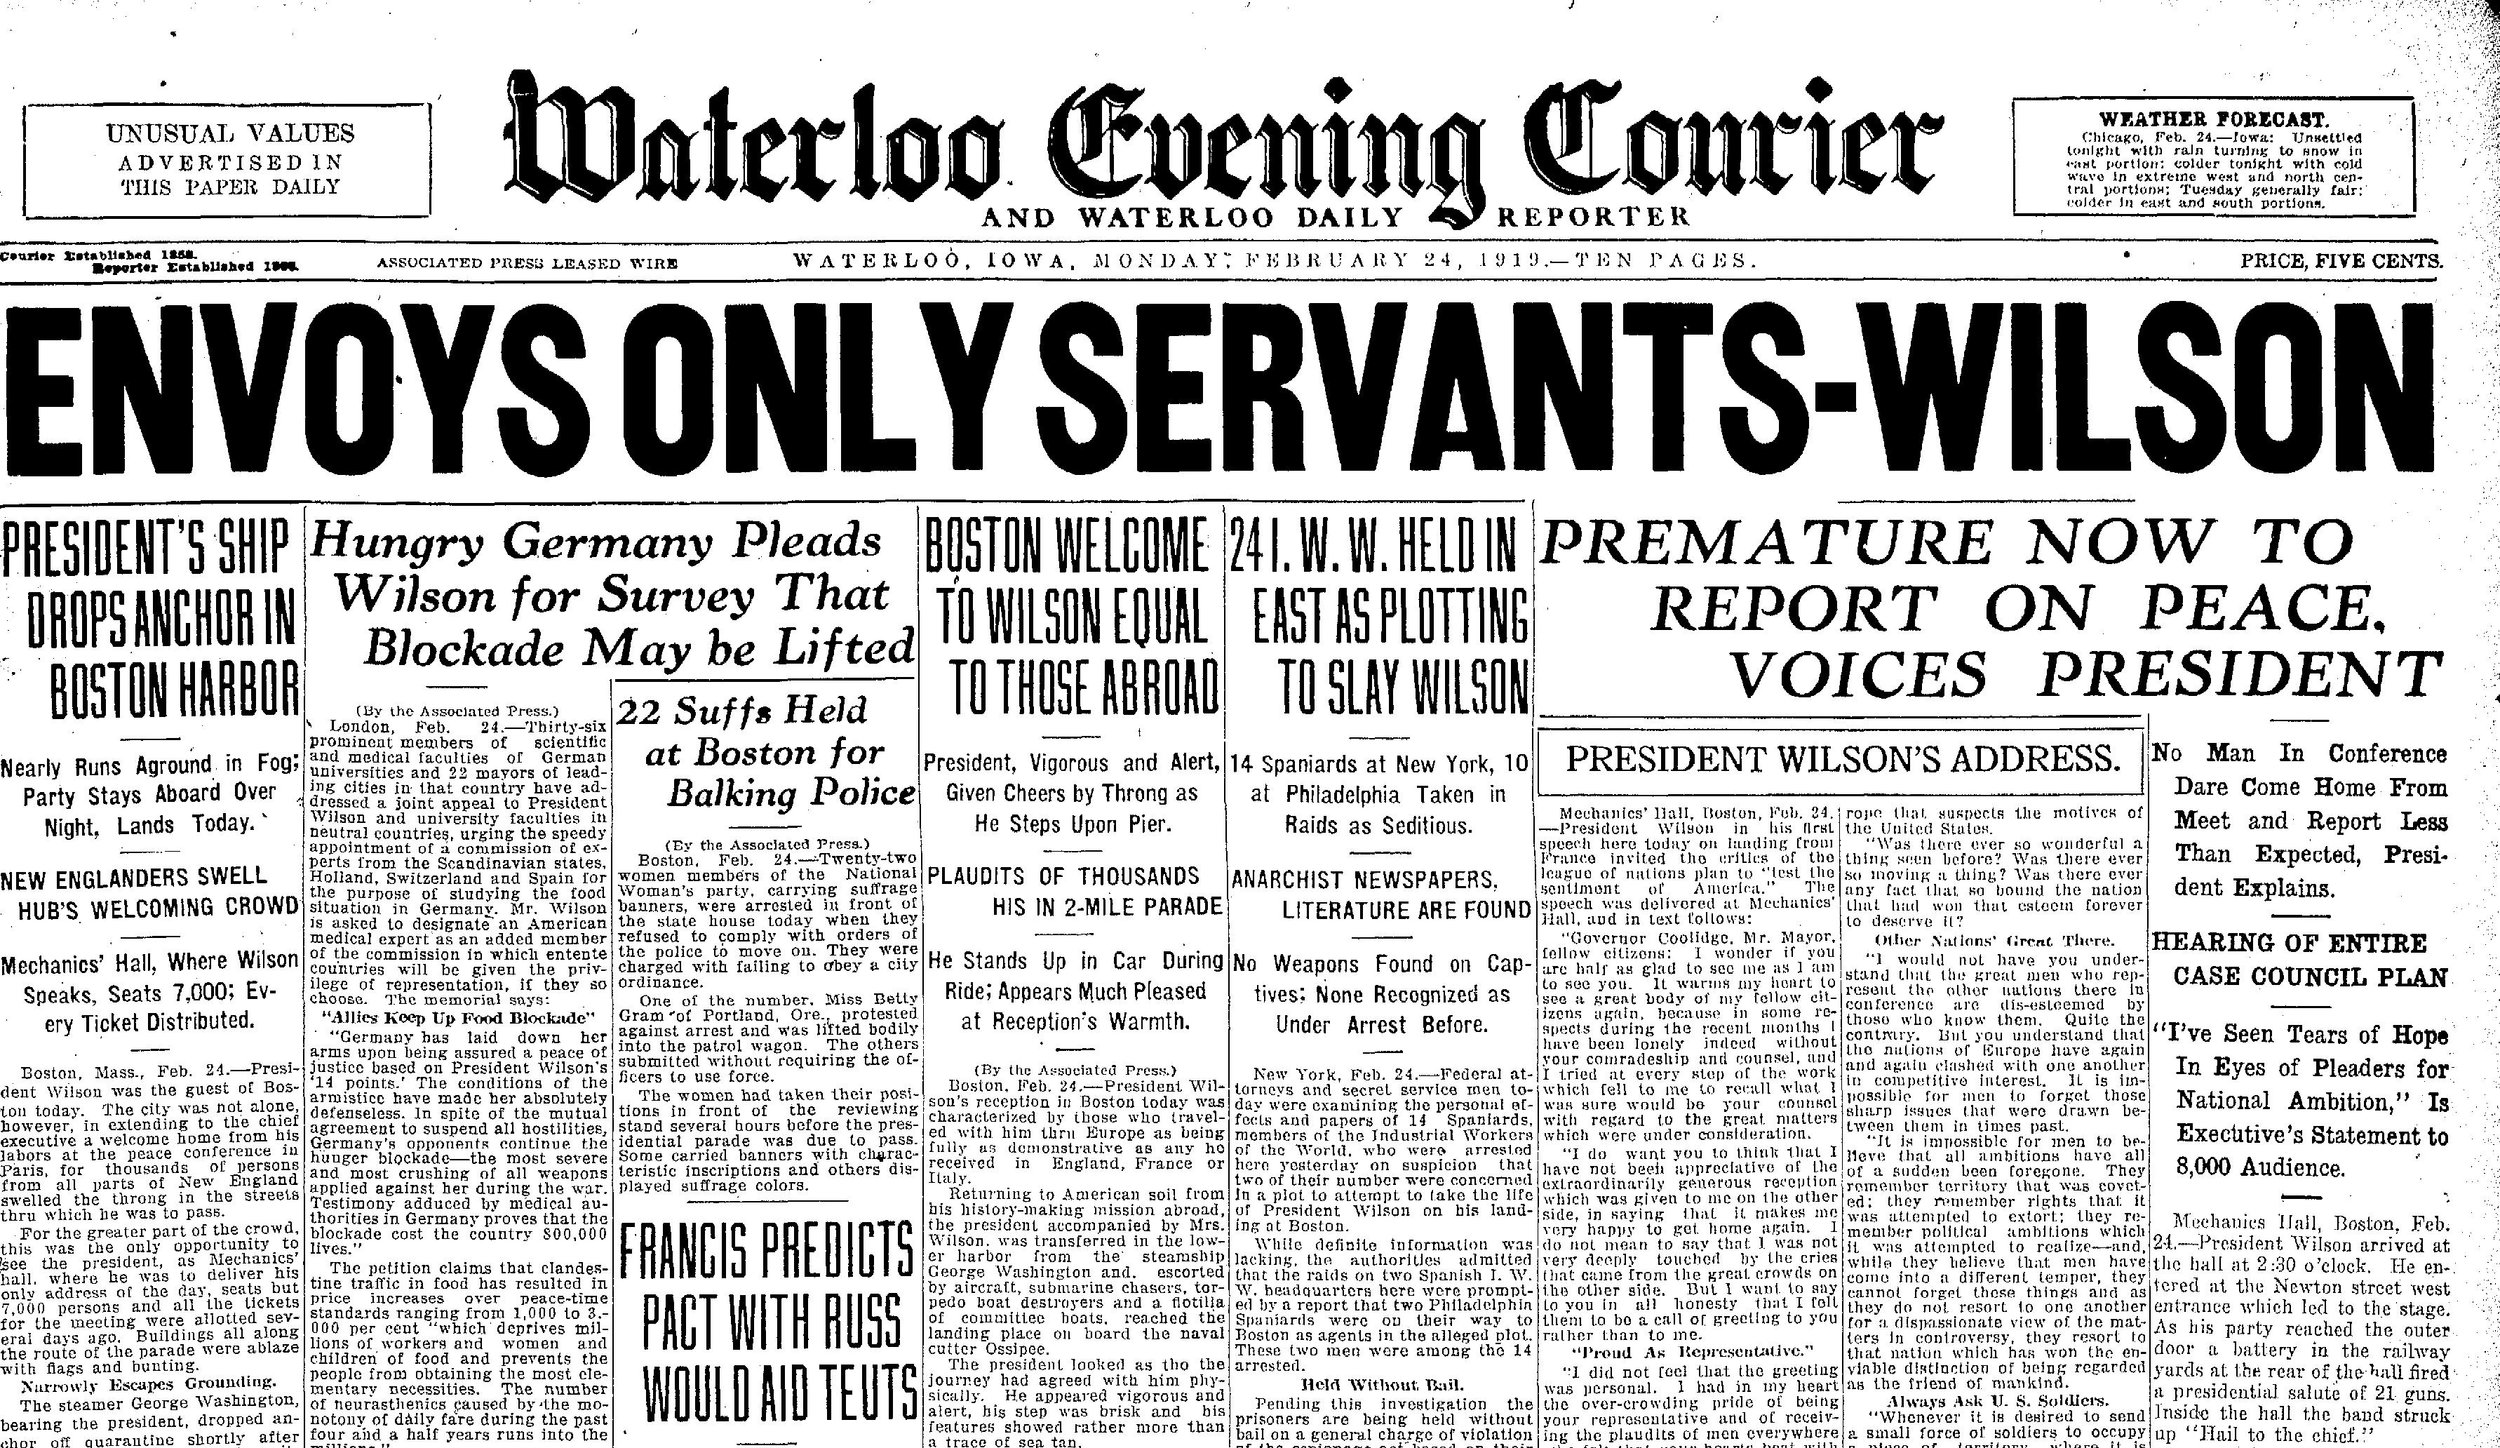 Front page of the Waterloo Evening Courier 2/24/1919